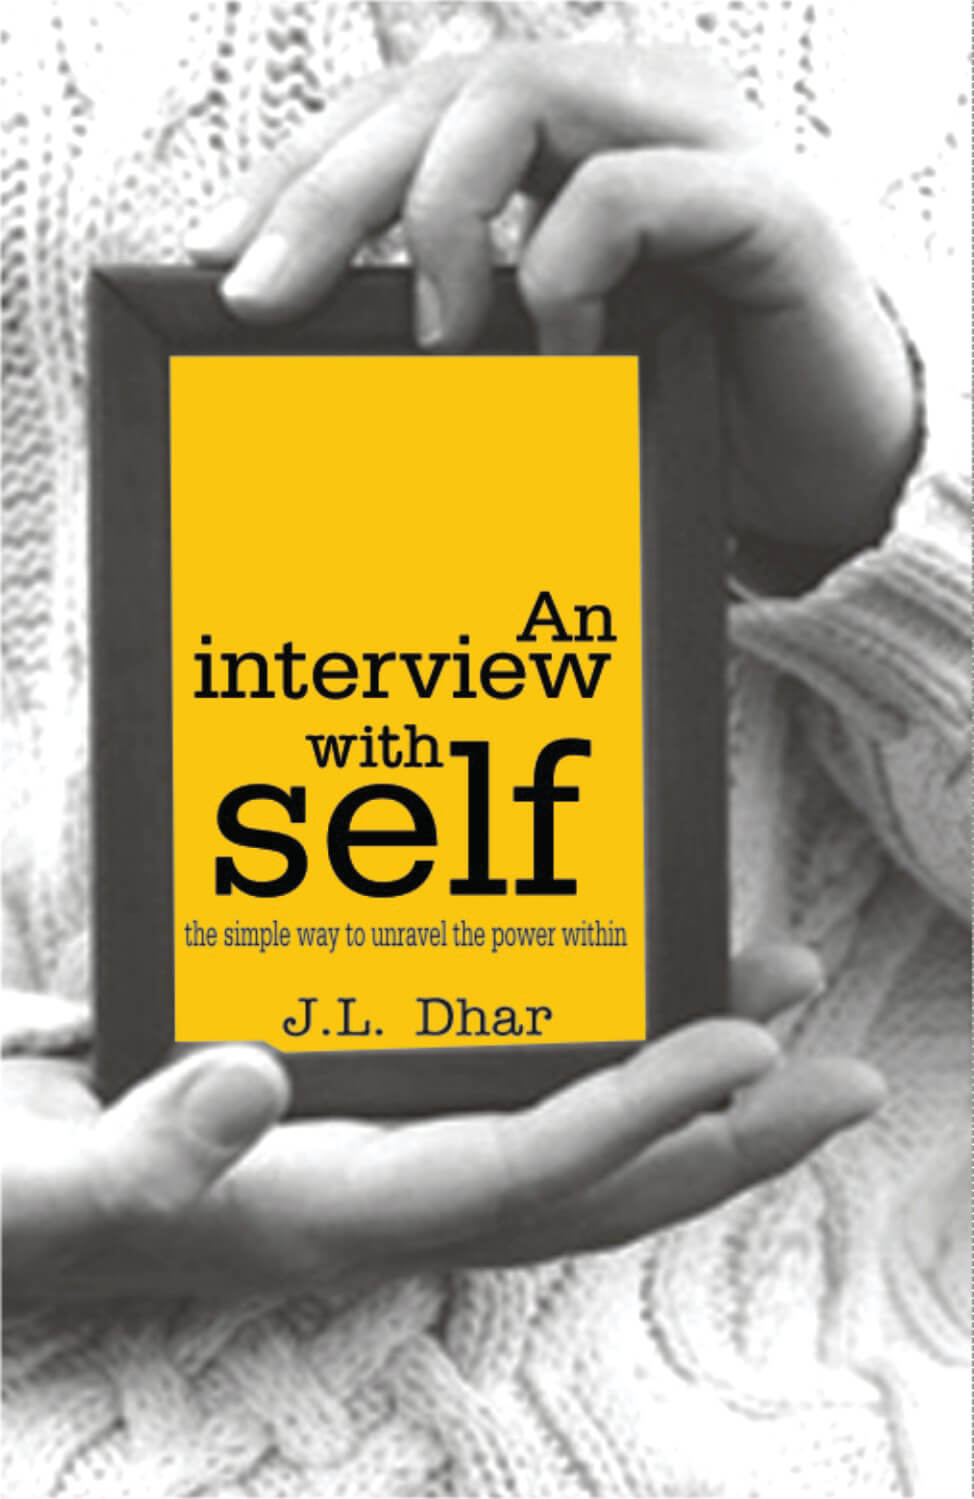 An Interview With Self: The Simple Way To Unravel The Power Within